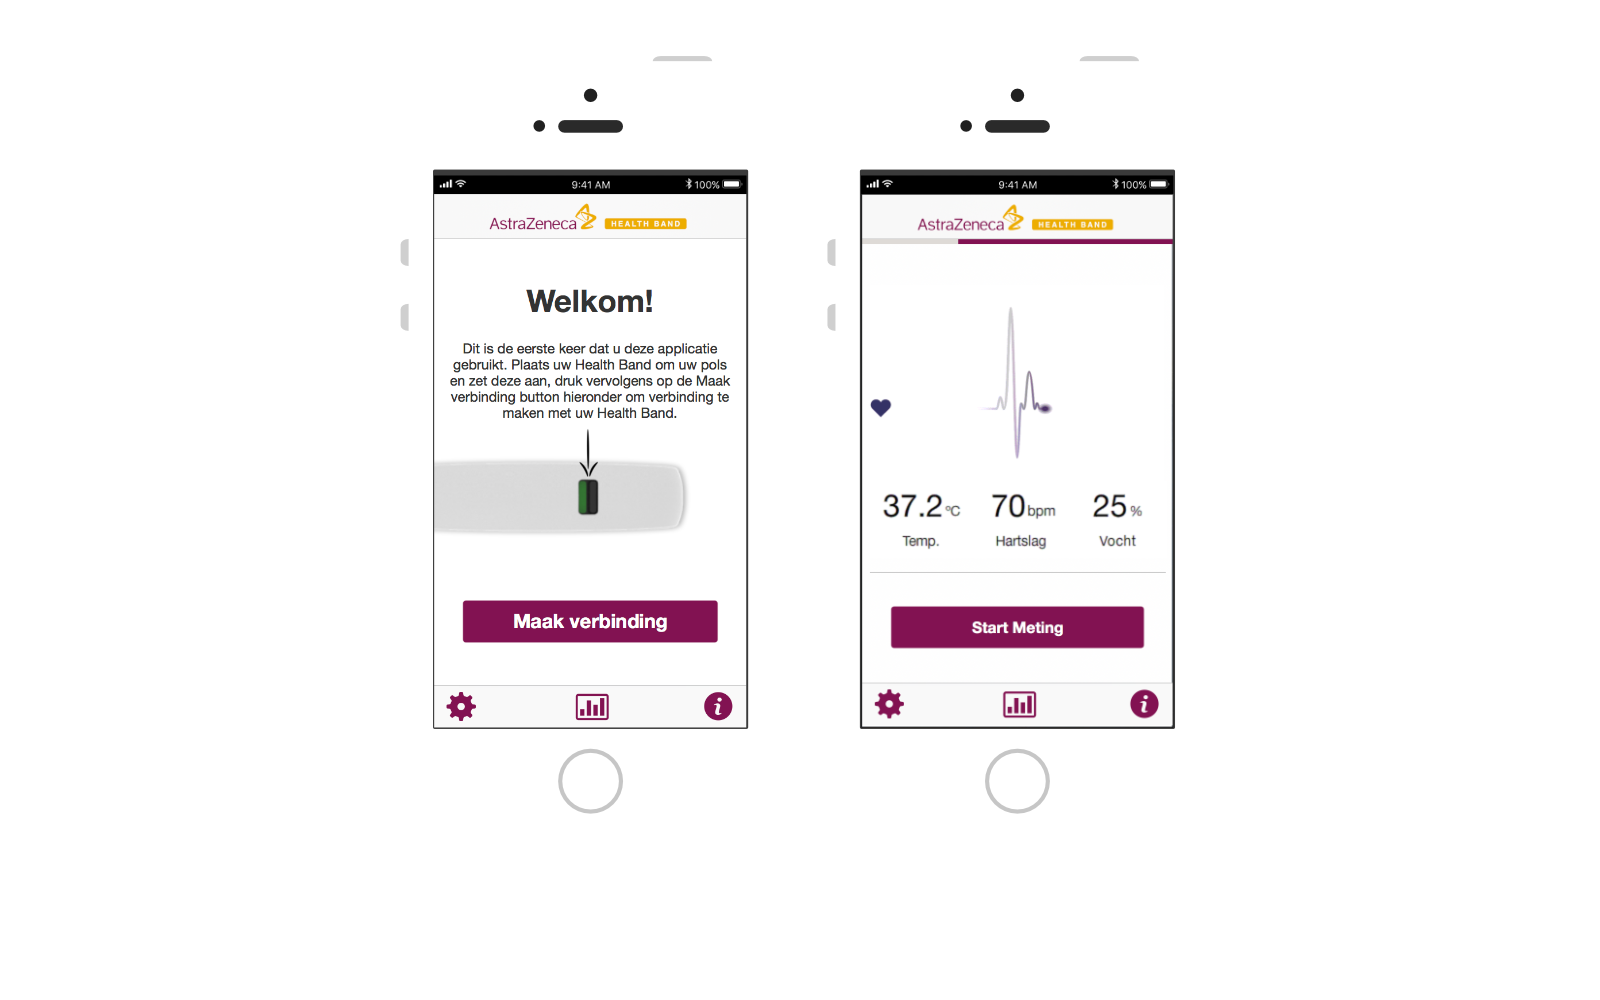 Two Astrazenca healthBand app screen demos shown on two iPhones side by side